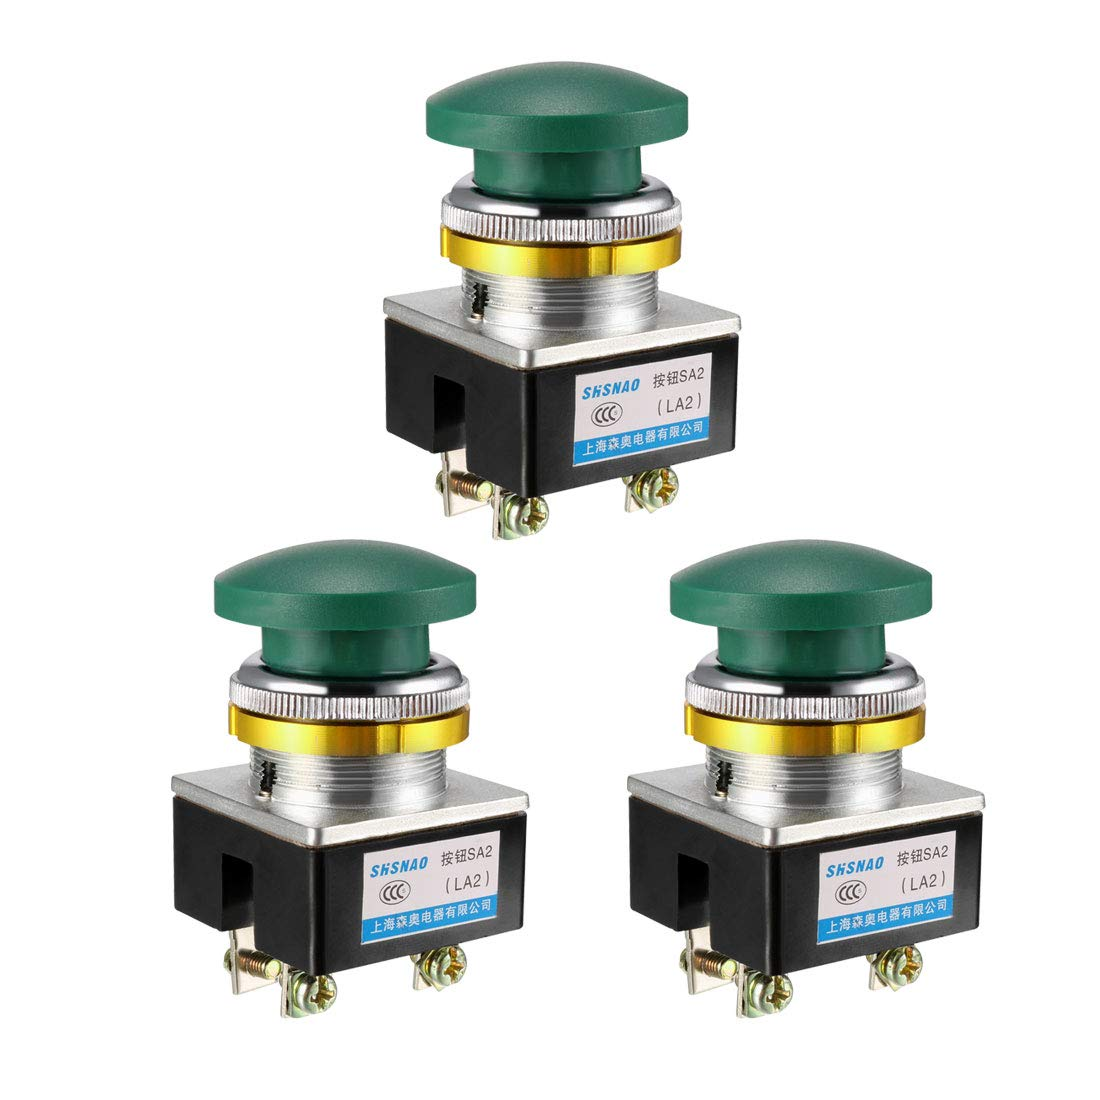 Pack of 3 uxcell Push Button Switch Green Momentary AC 380V 5A Mushroom Head Pushbutton Switches 30mm Panel Mount